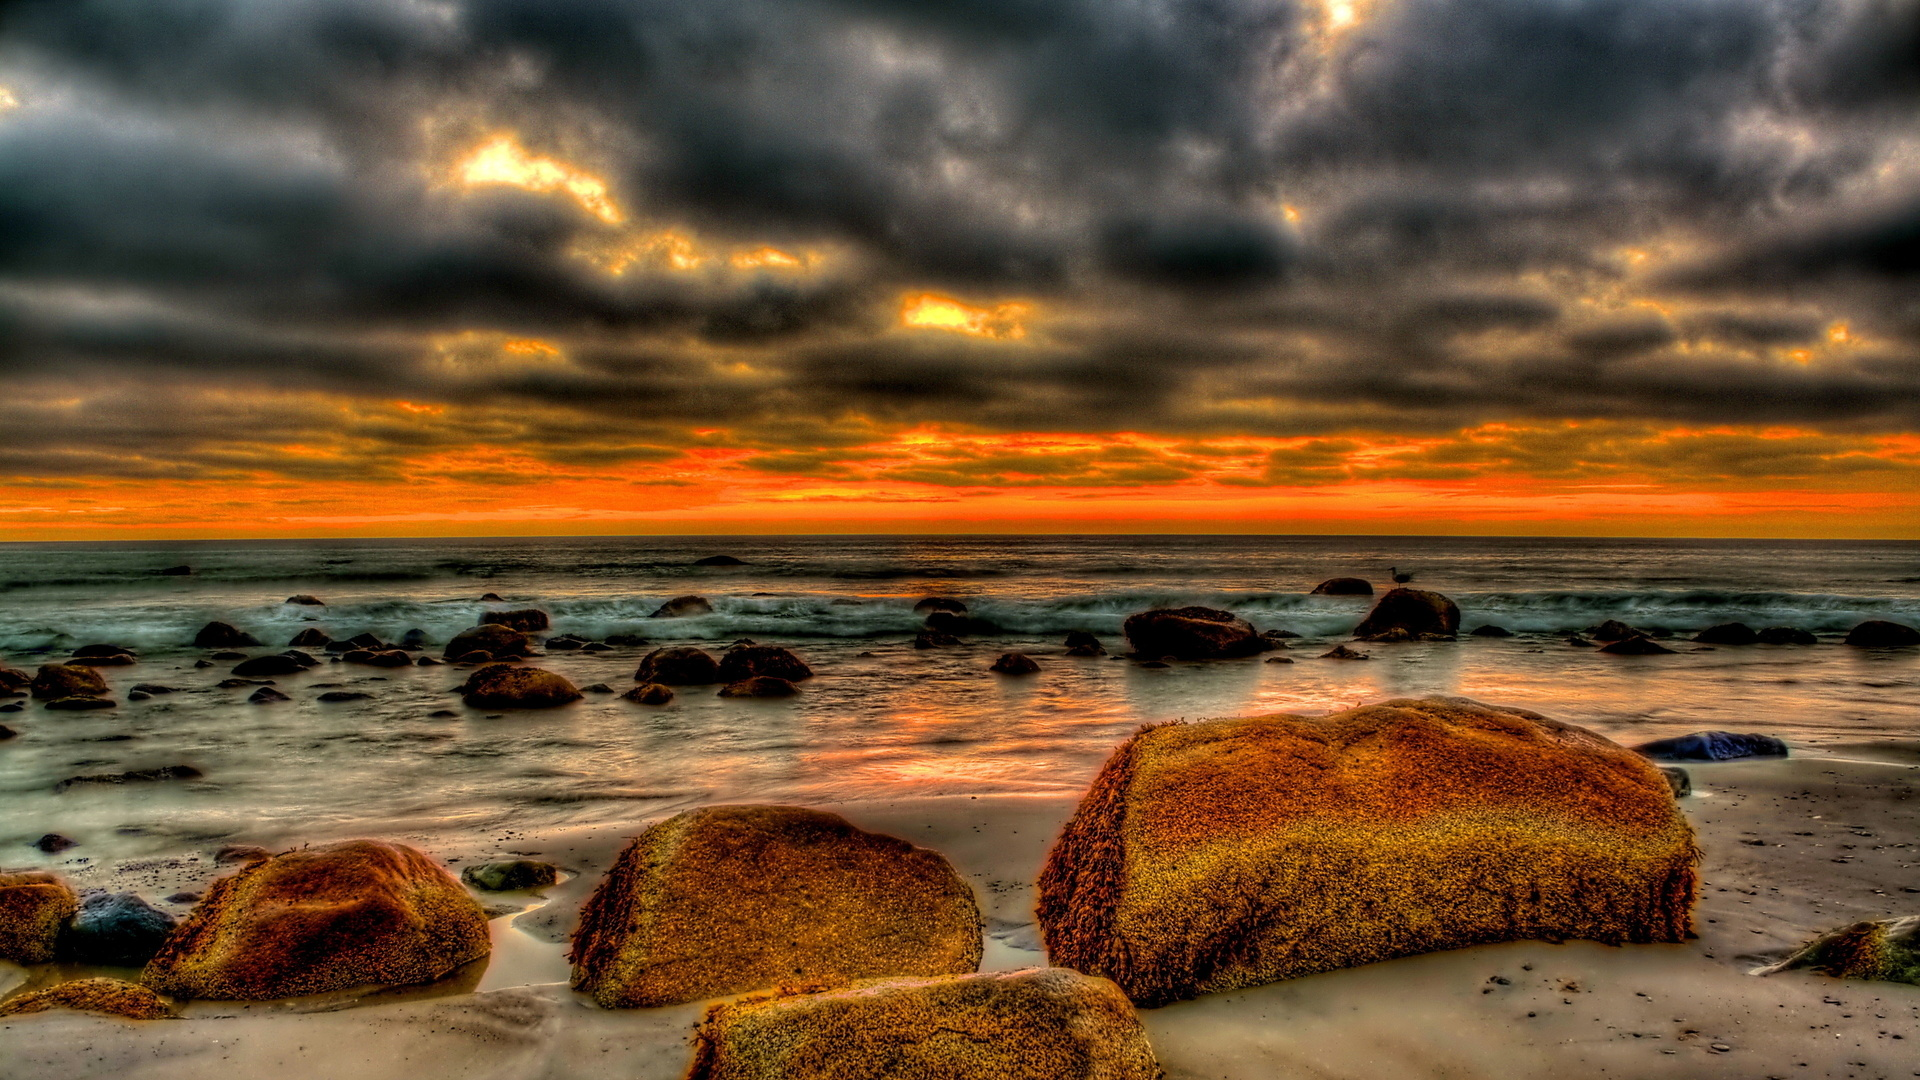 Amazing HDR Beach